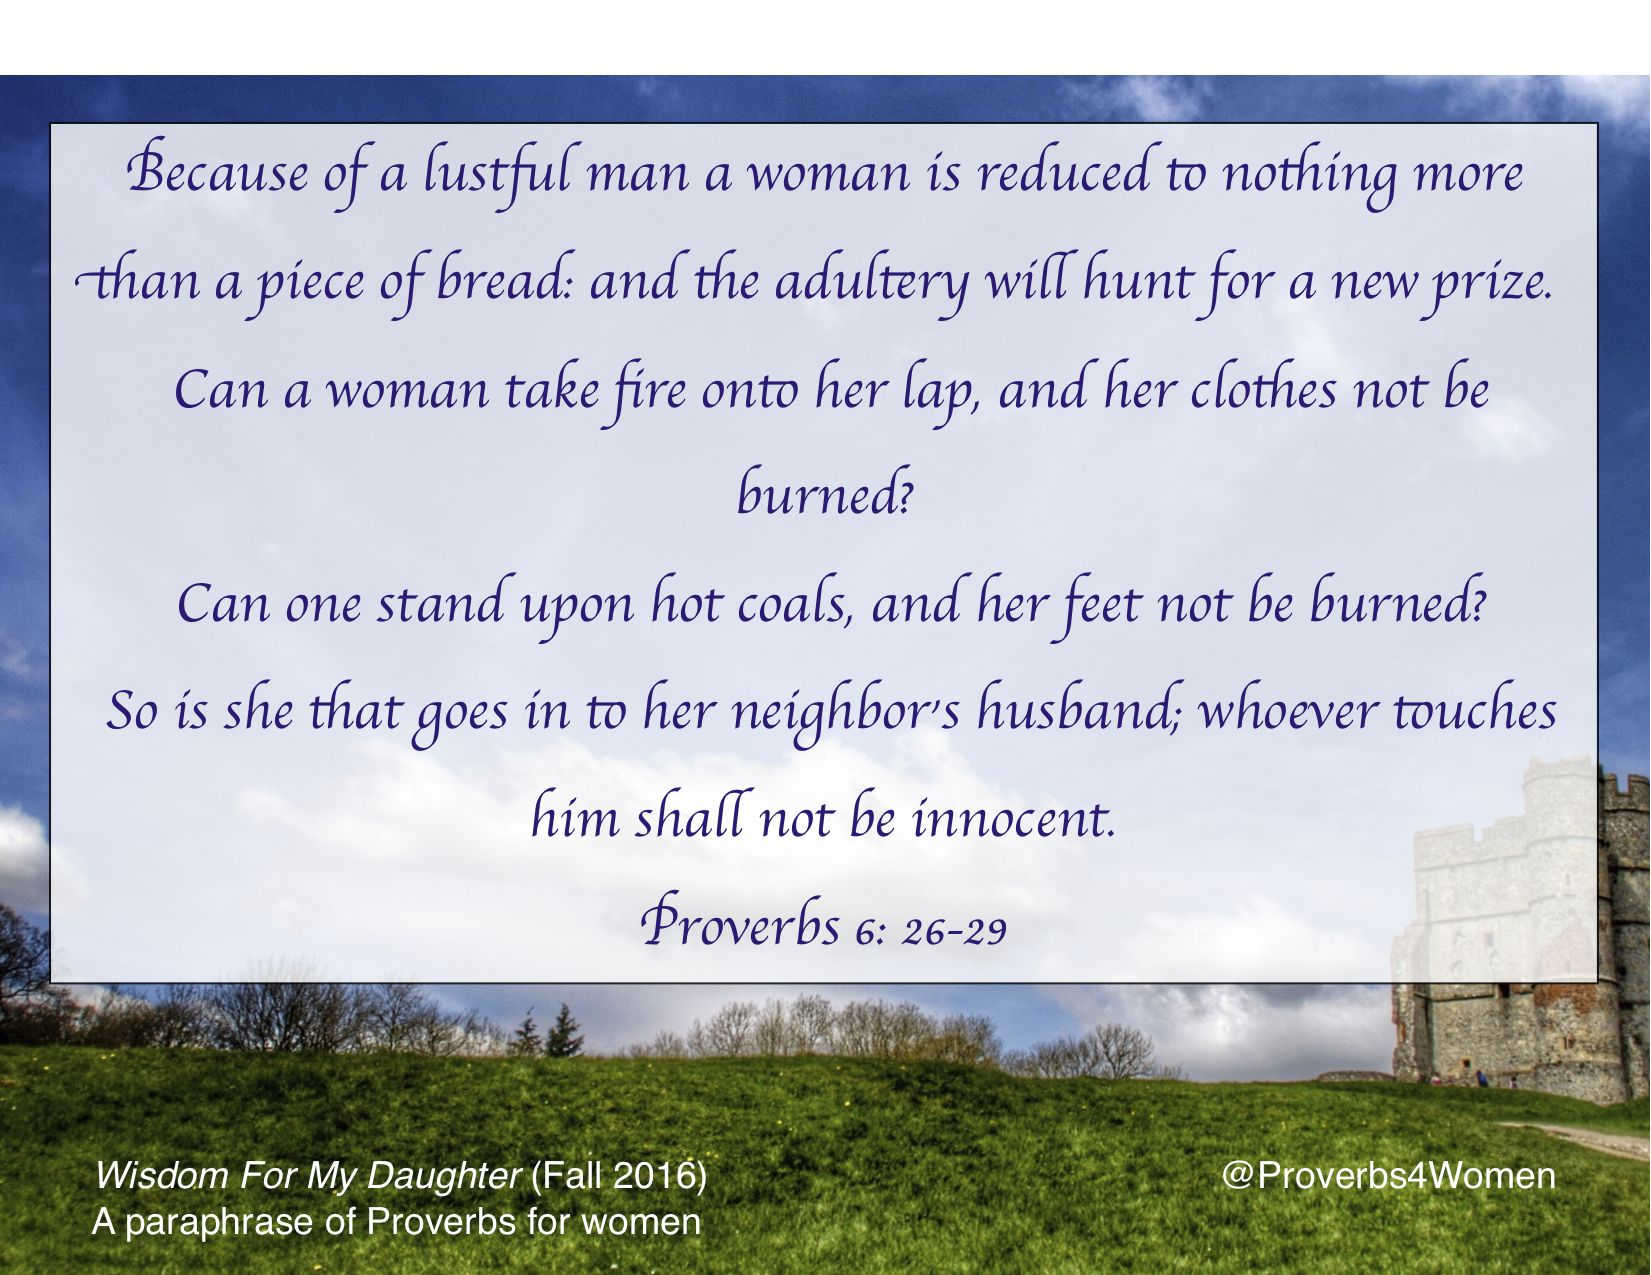 Proverb 6 26 29 You Are The Father To My Daughter Book Of Proverbs Paraphrase For